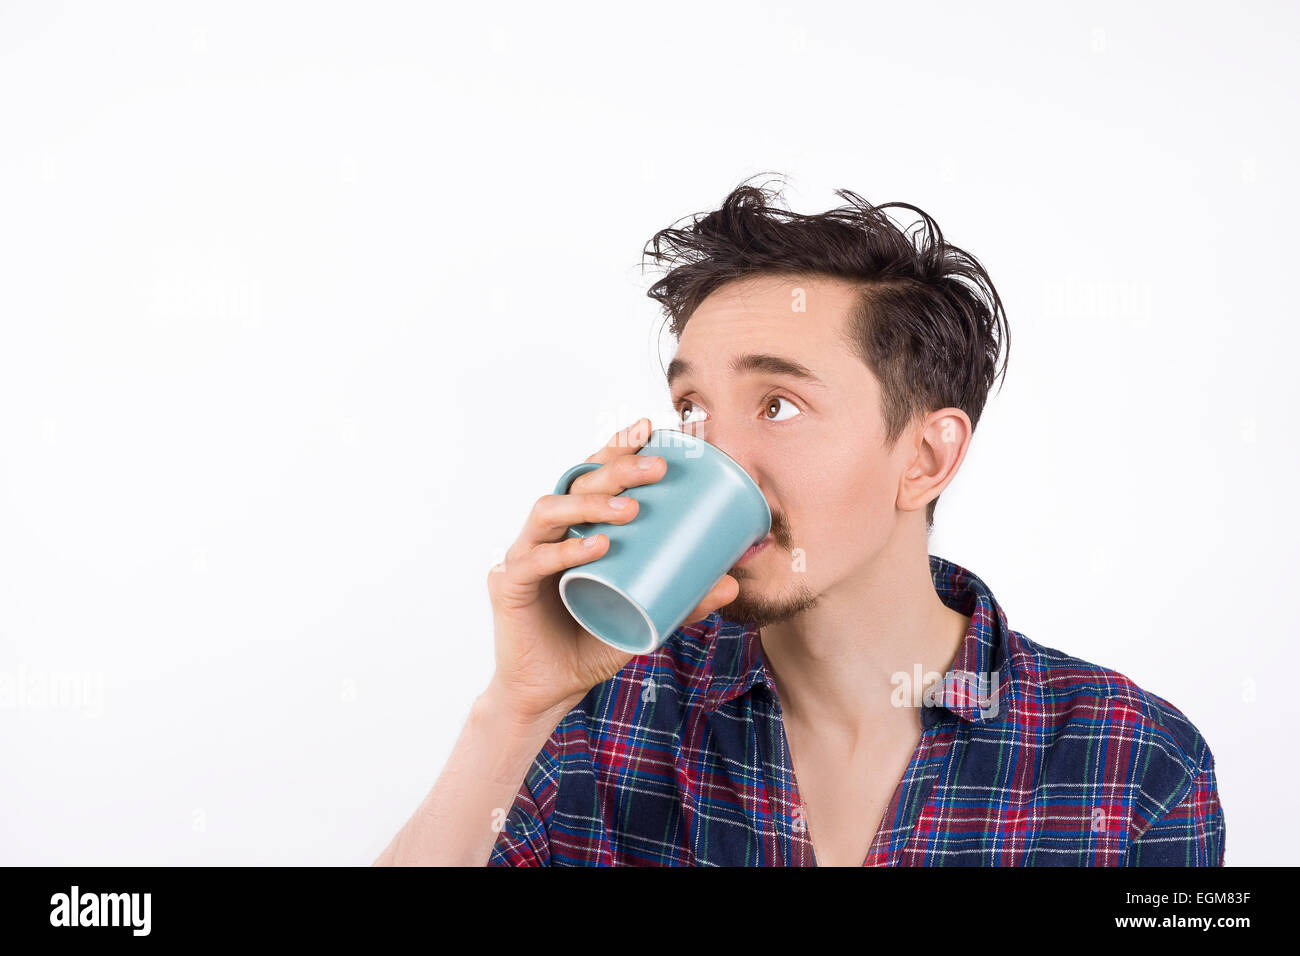 Portrait of a man wearing pajamas drinking coffee or tea and looking to his right. Isolated on white - Stock Image